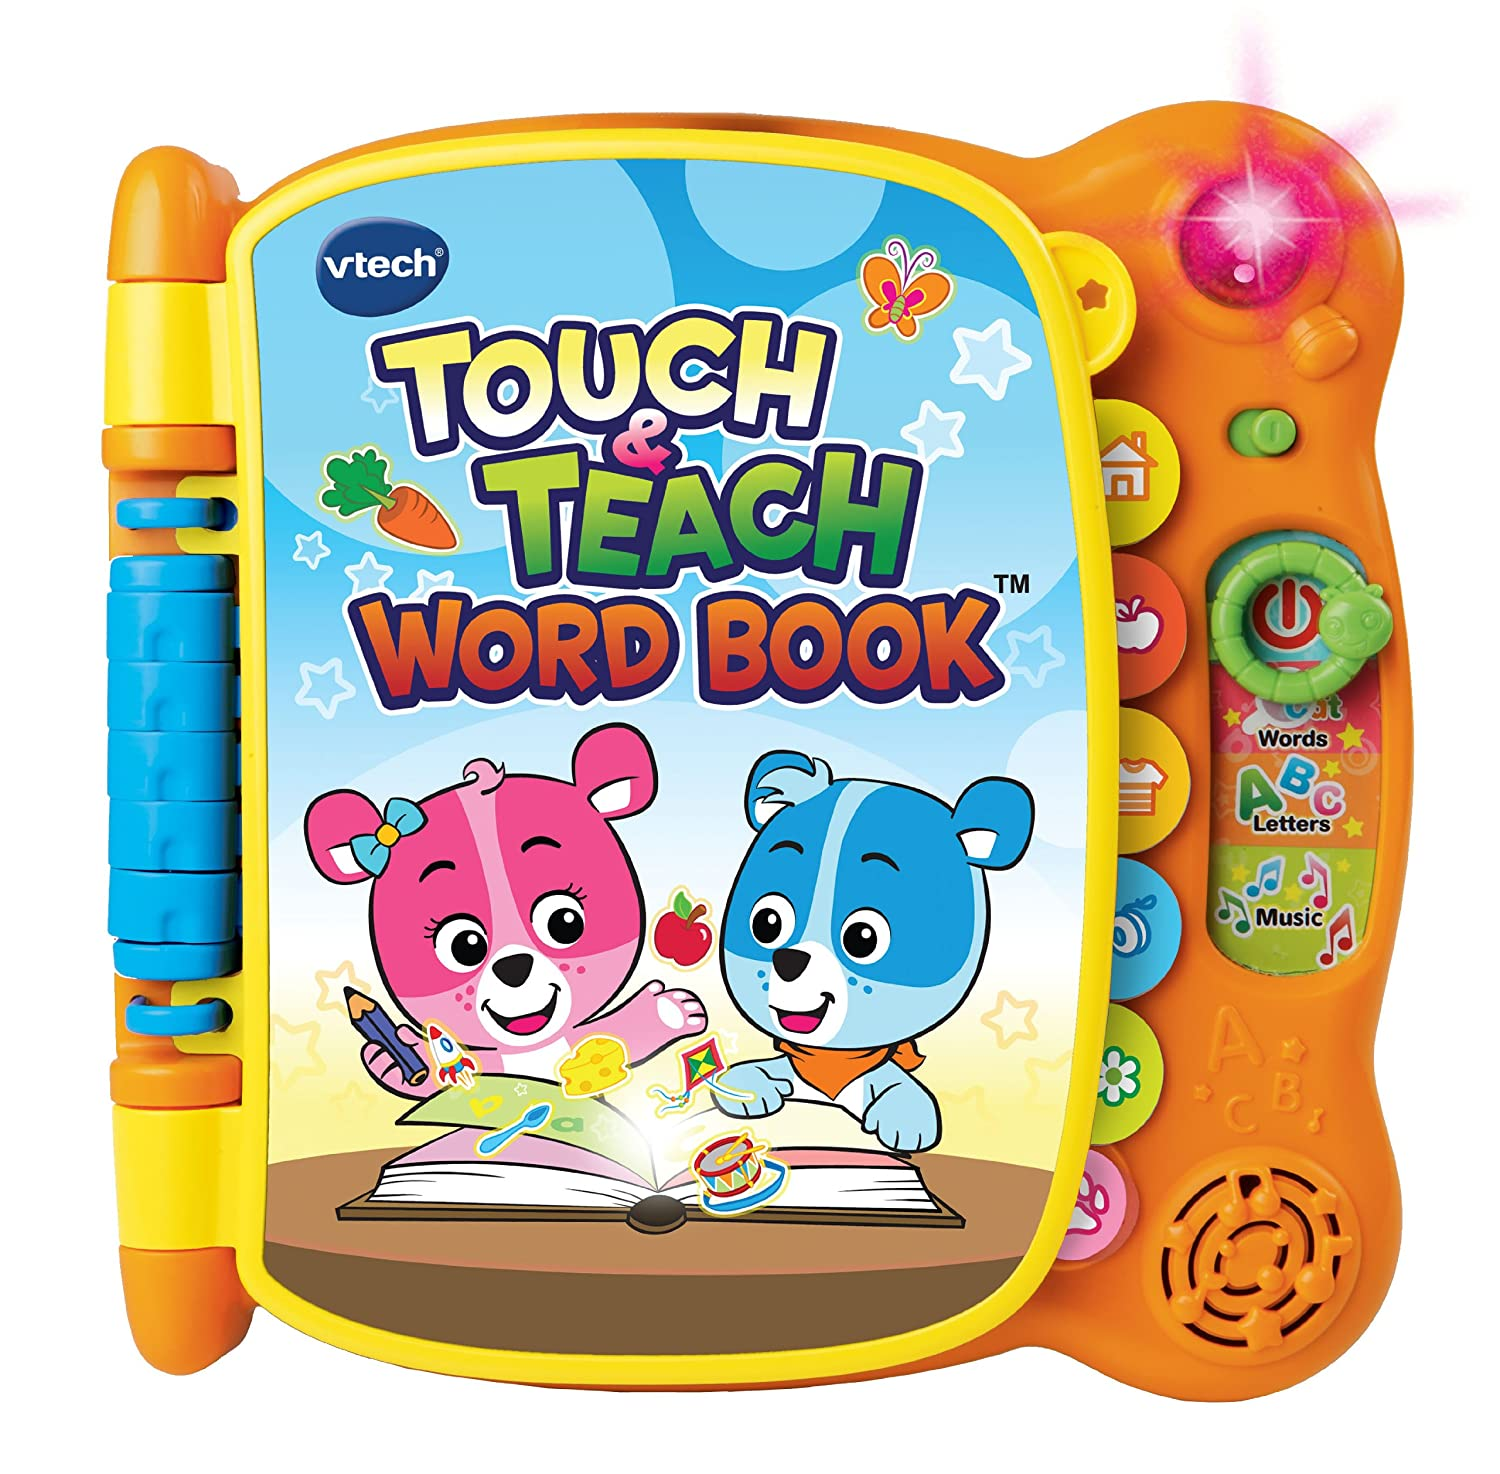 Amazon VTech Touch and Teach Word Book Toys & Games